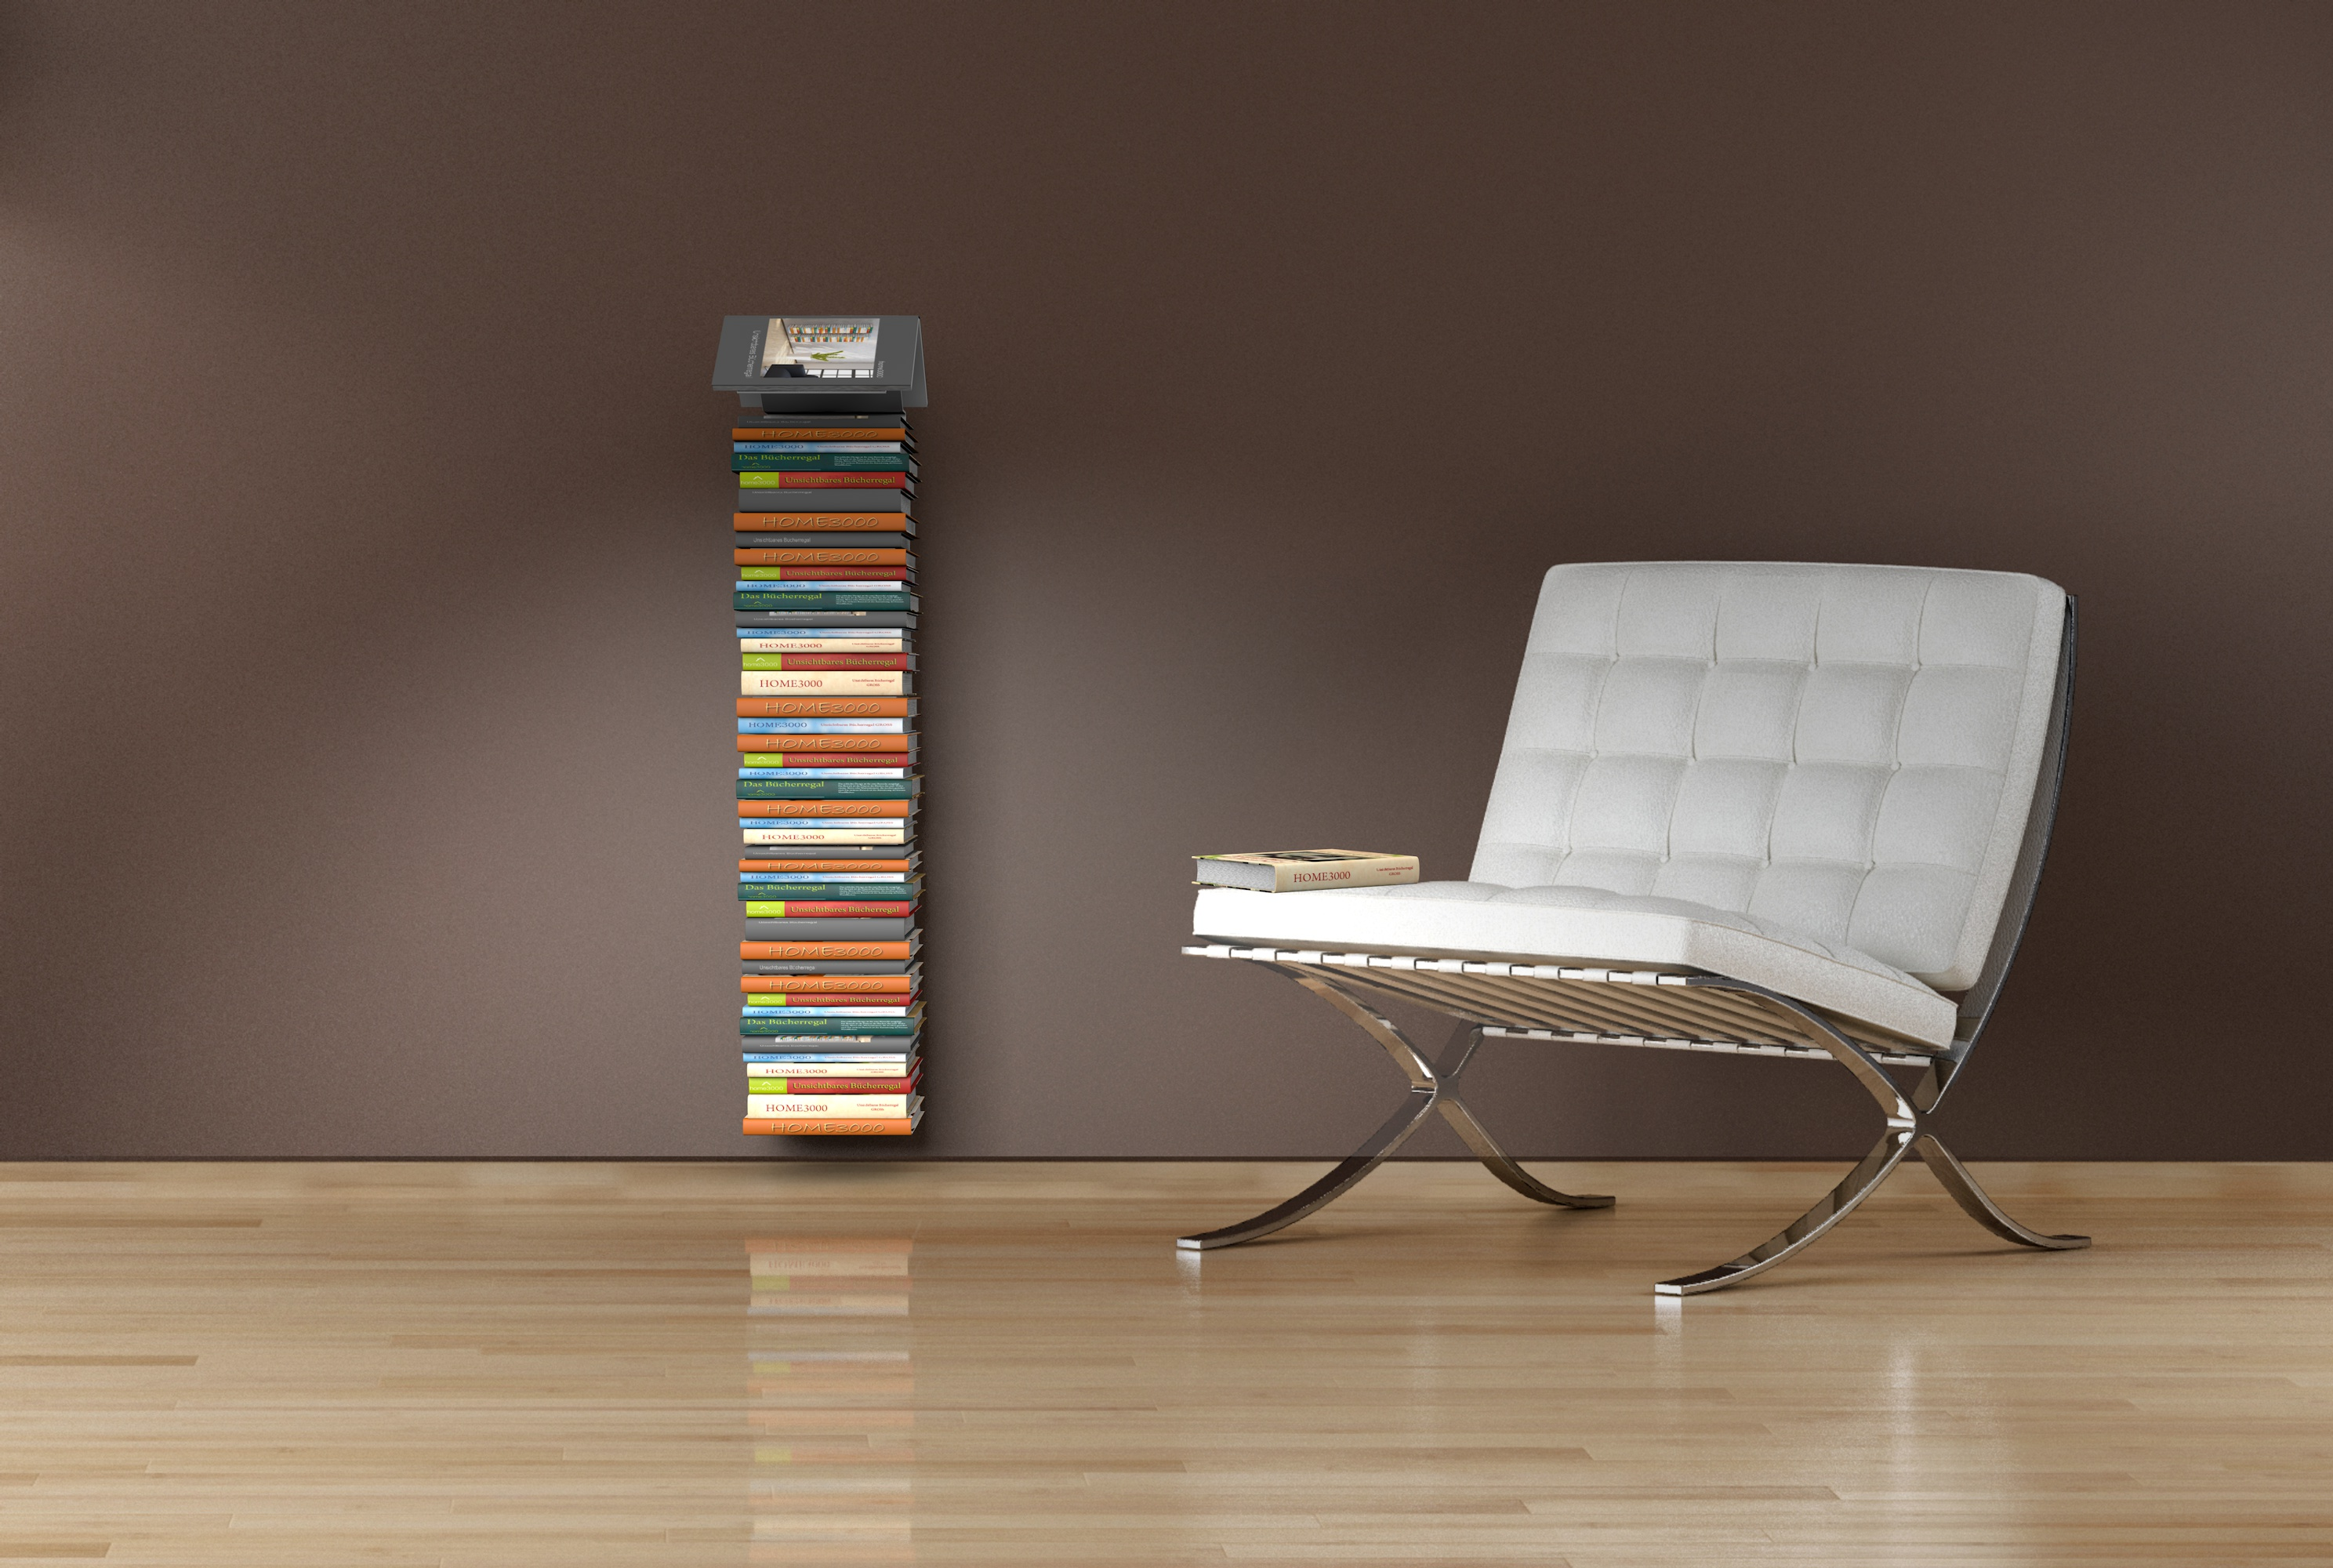 Bücher Regale Home3000 Bookmark Regal 2er Set Mit Unsichtbaren Bücherregalen